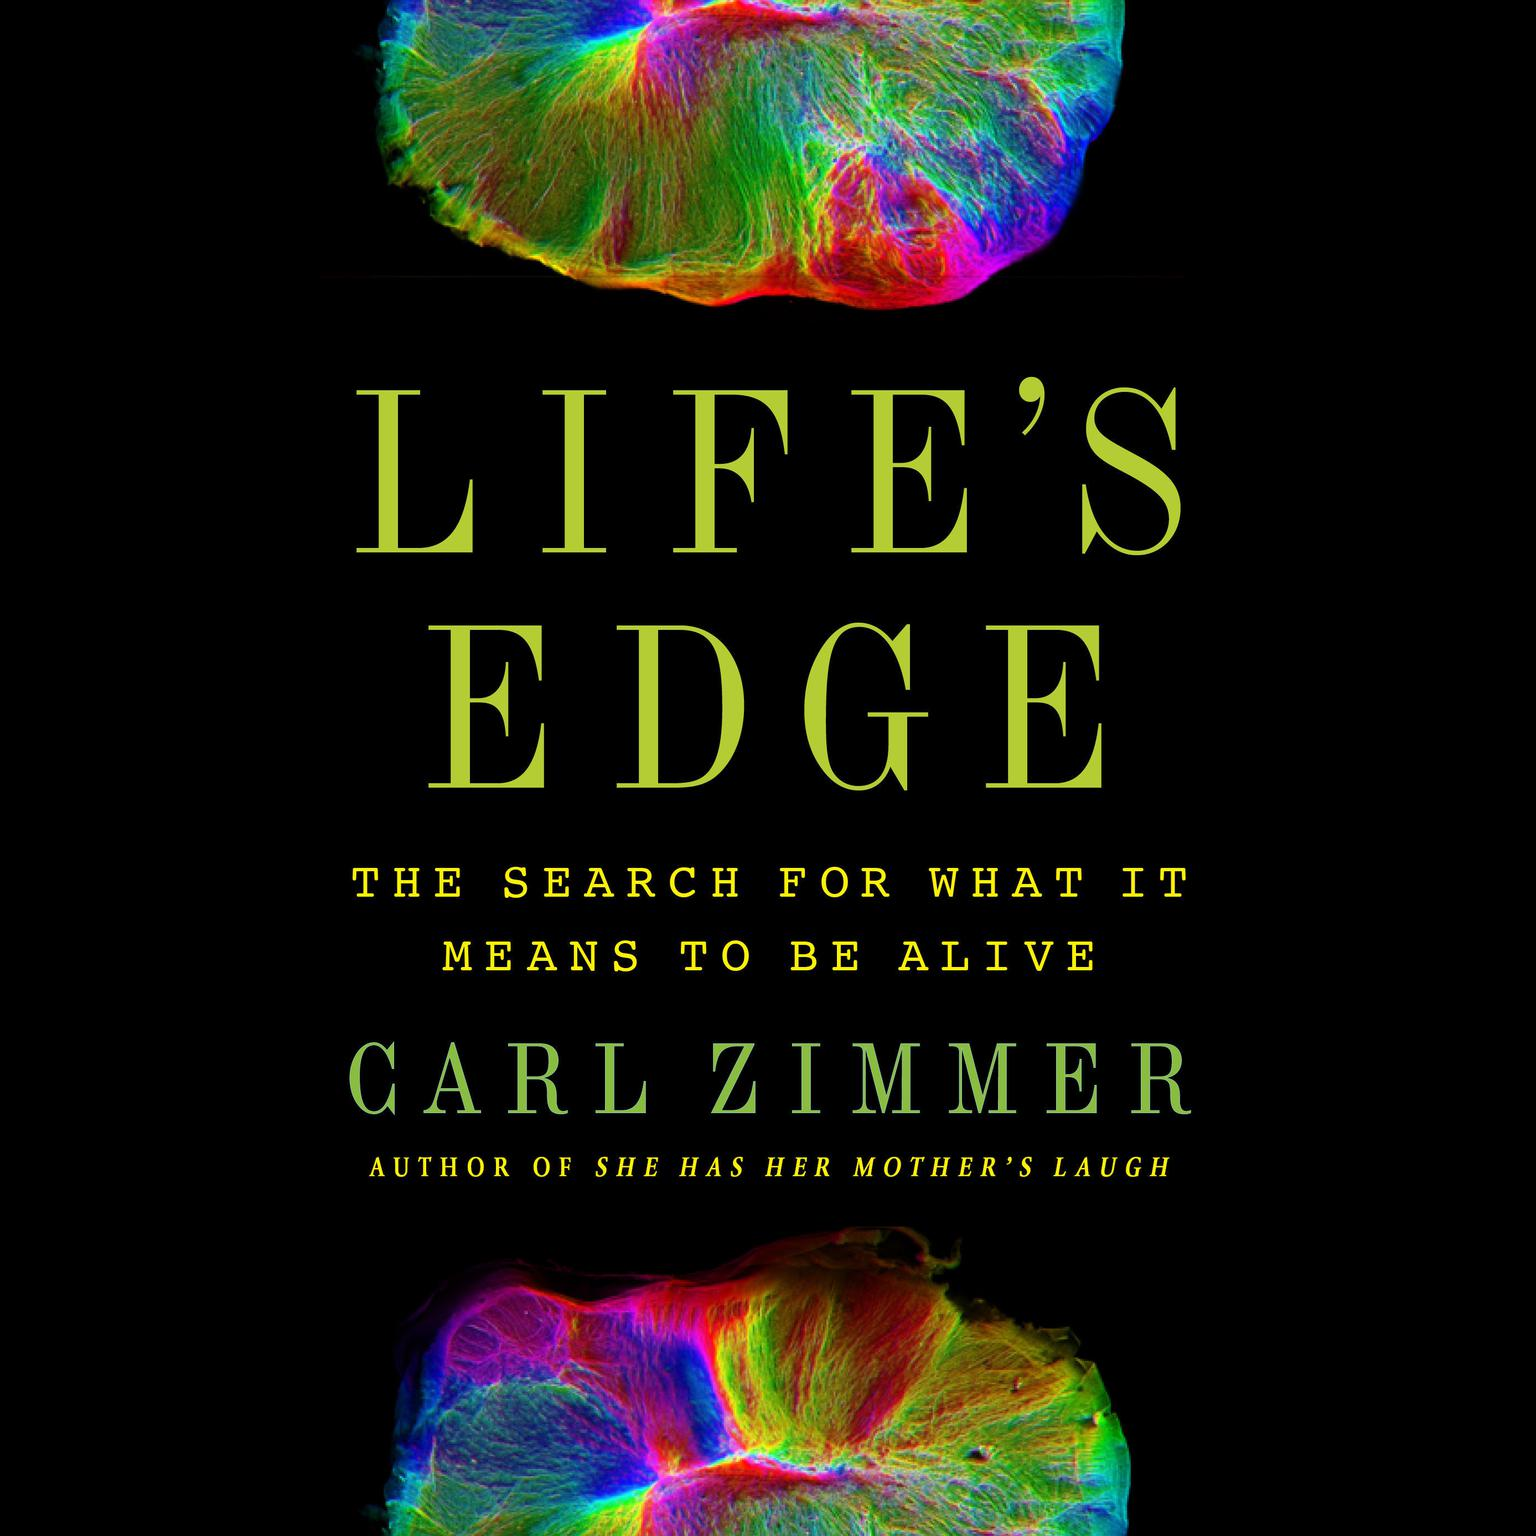 Lifes Edge: The Search for What It Means to Be Alive Audiobook, by Carl Zimmer